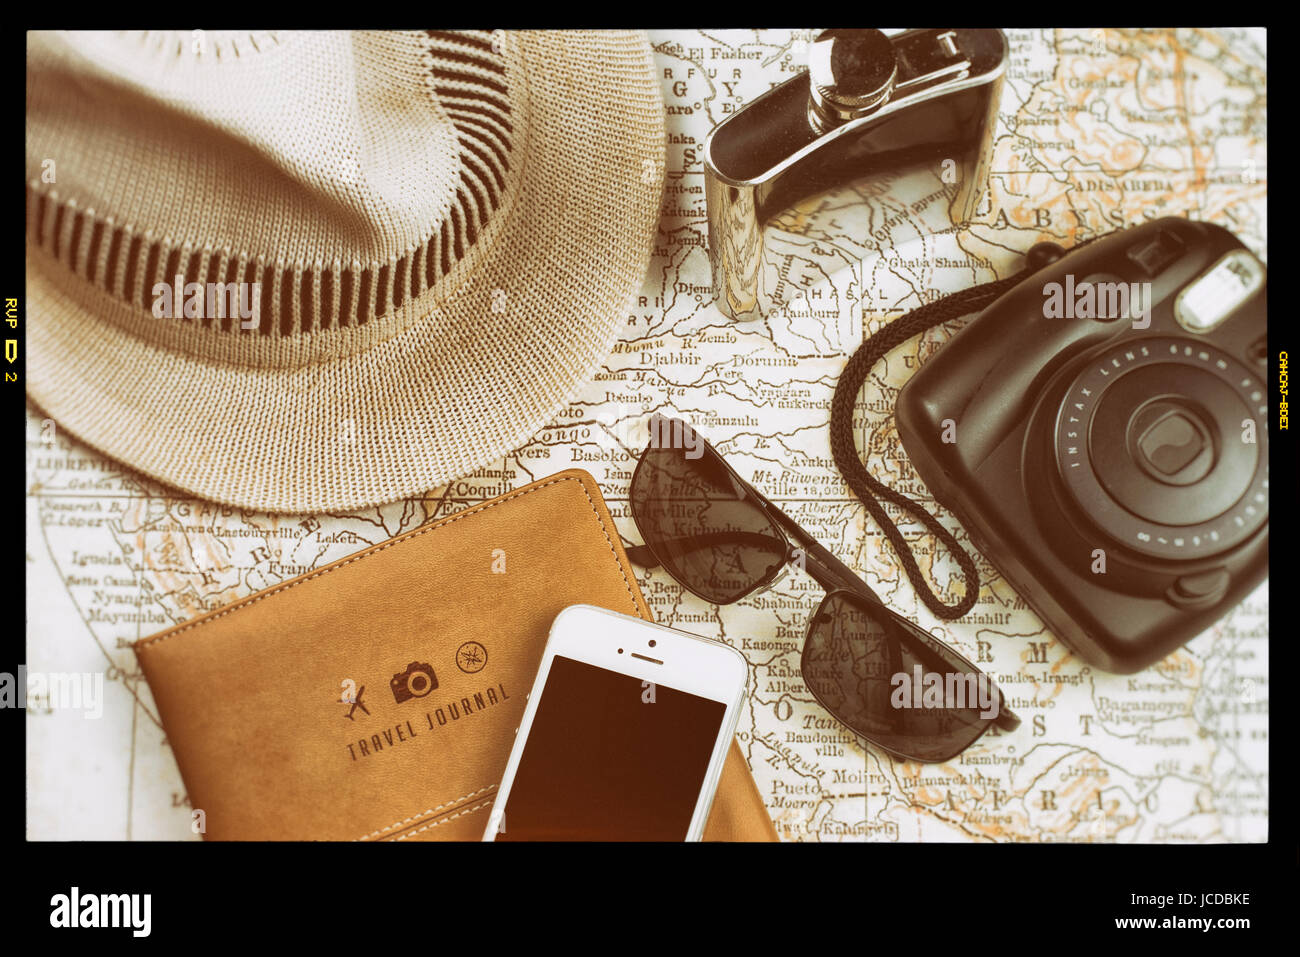 travel journal map with instant camera like polaroid mobile phone with black screen sunglasses flask in stainless steel and white hat